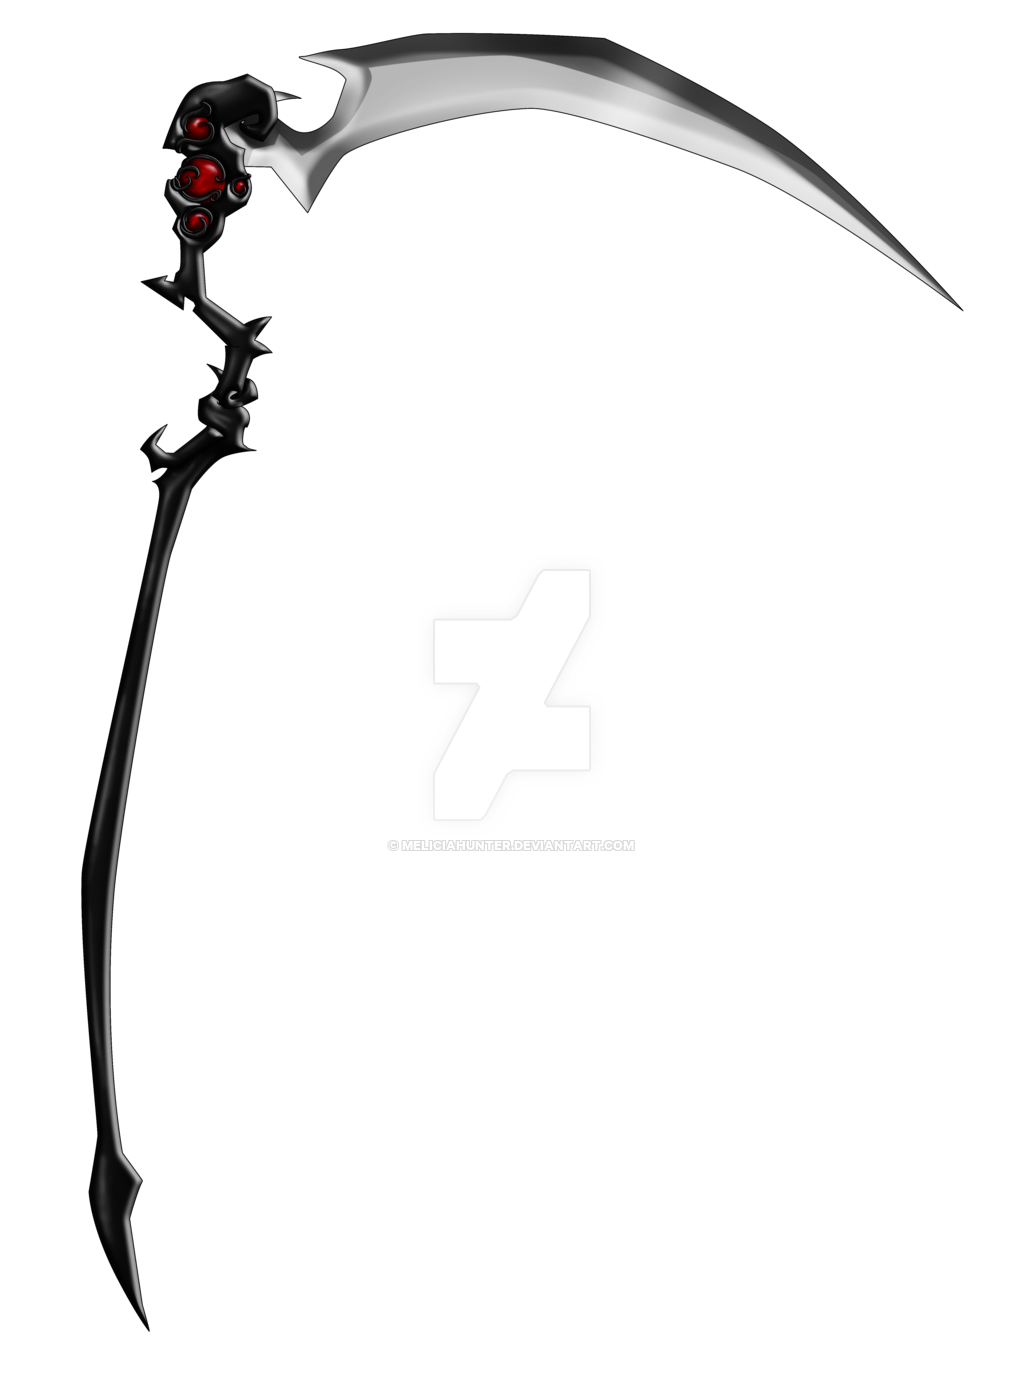 Anime scythe png. By meliciahunter d rwp